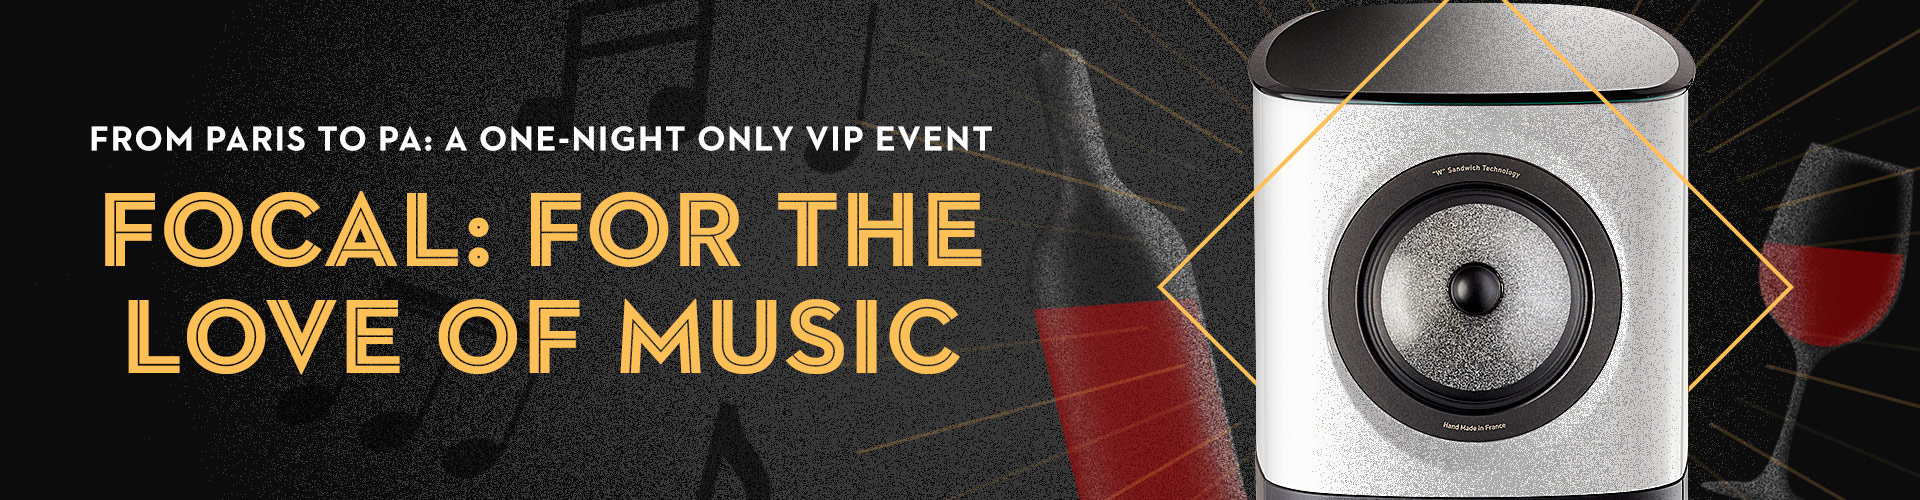 Focal VIP Experience